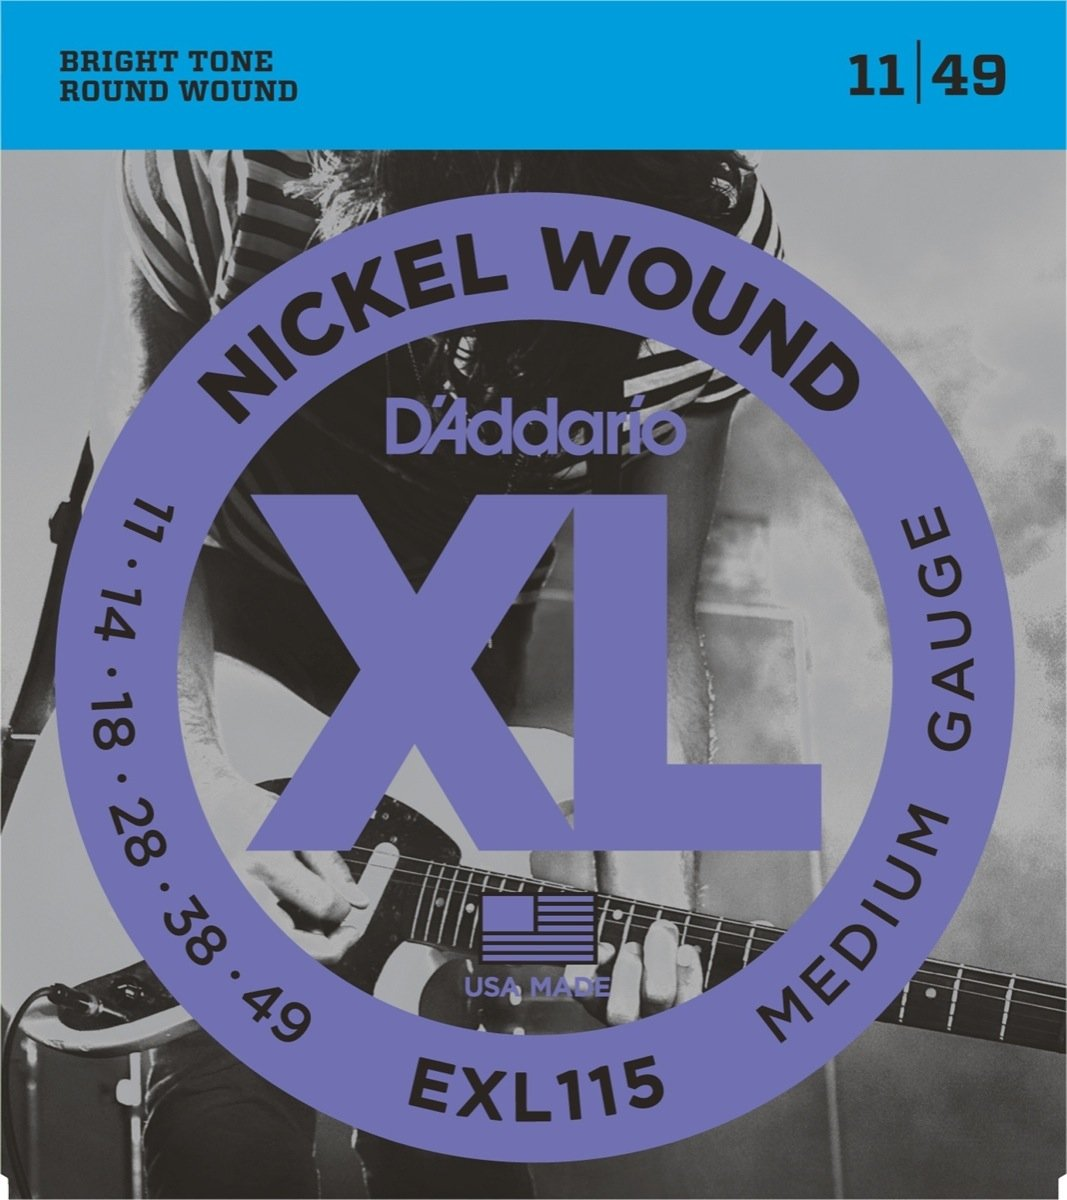 D'Addario EXL 115 Blues/Jazz Rock